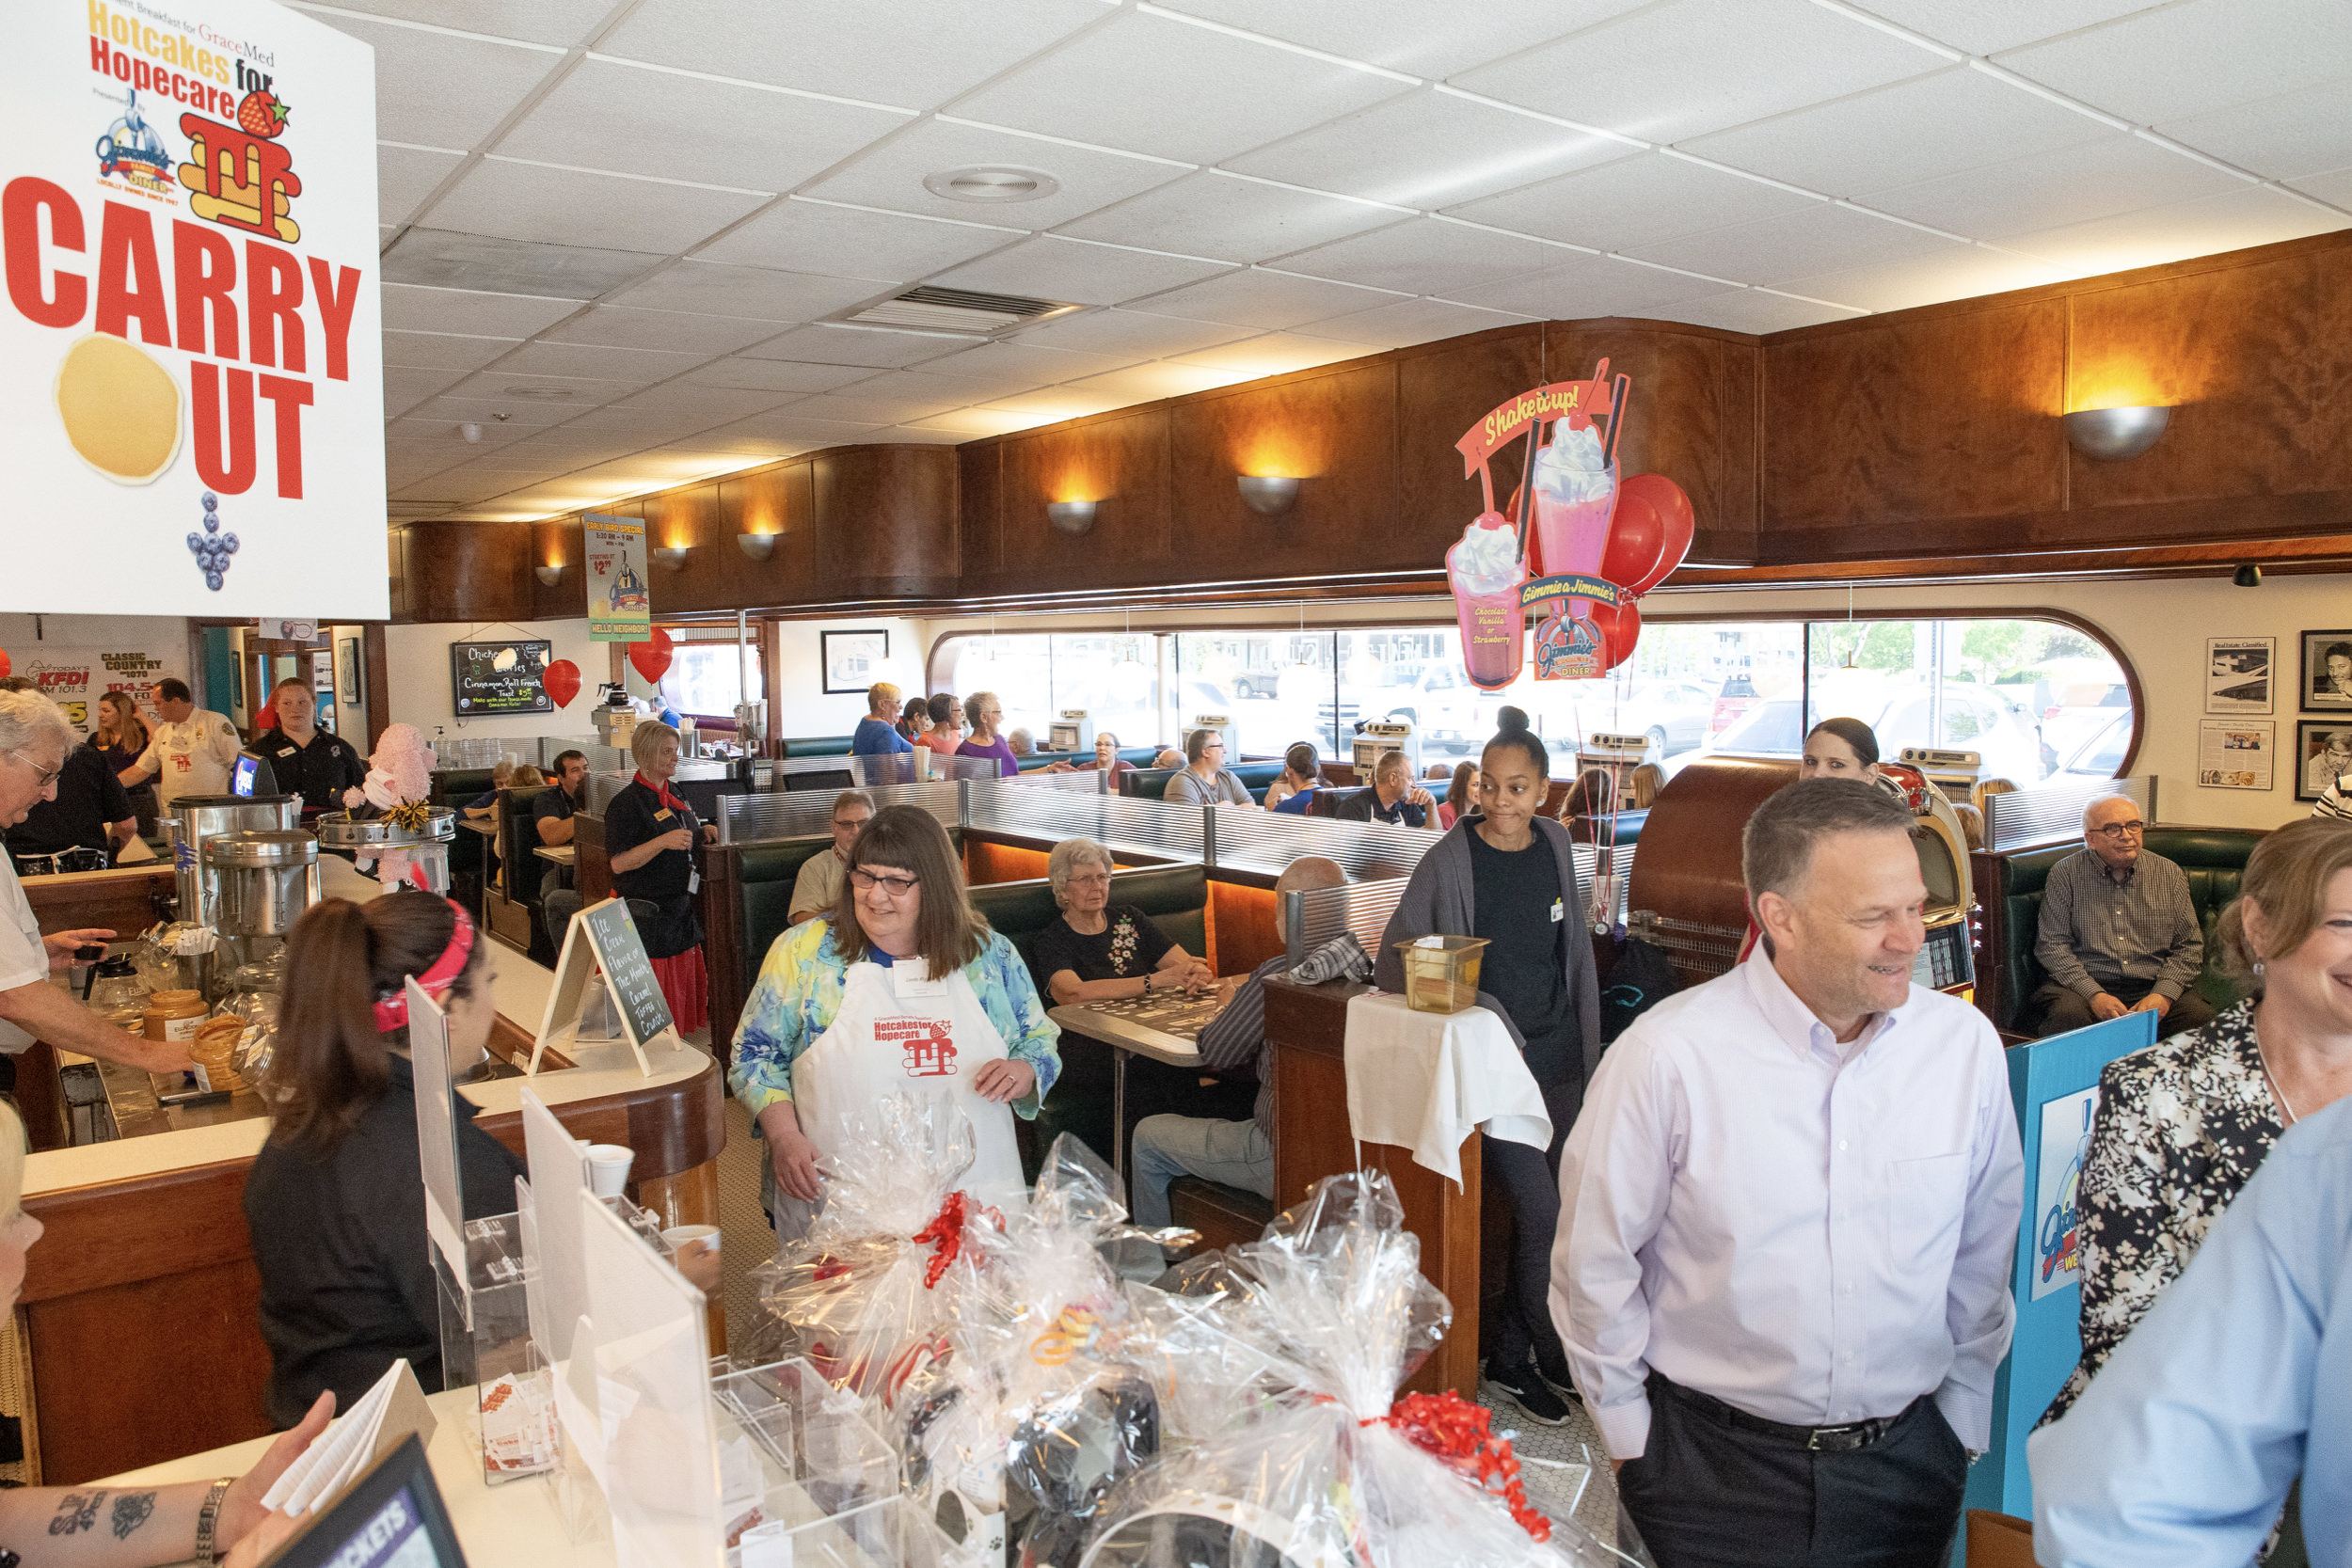 The packed house at Jimmie's Family Diner on North Rock Road.